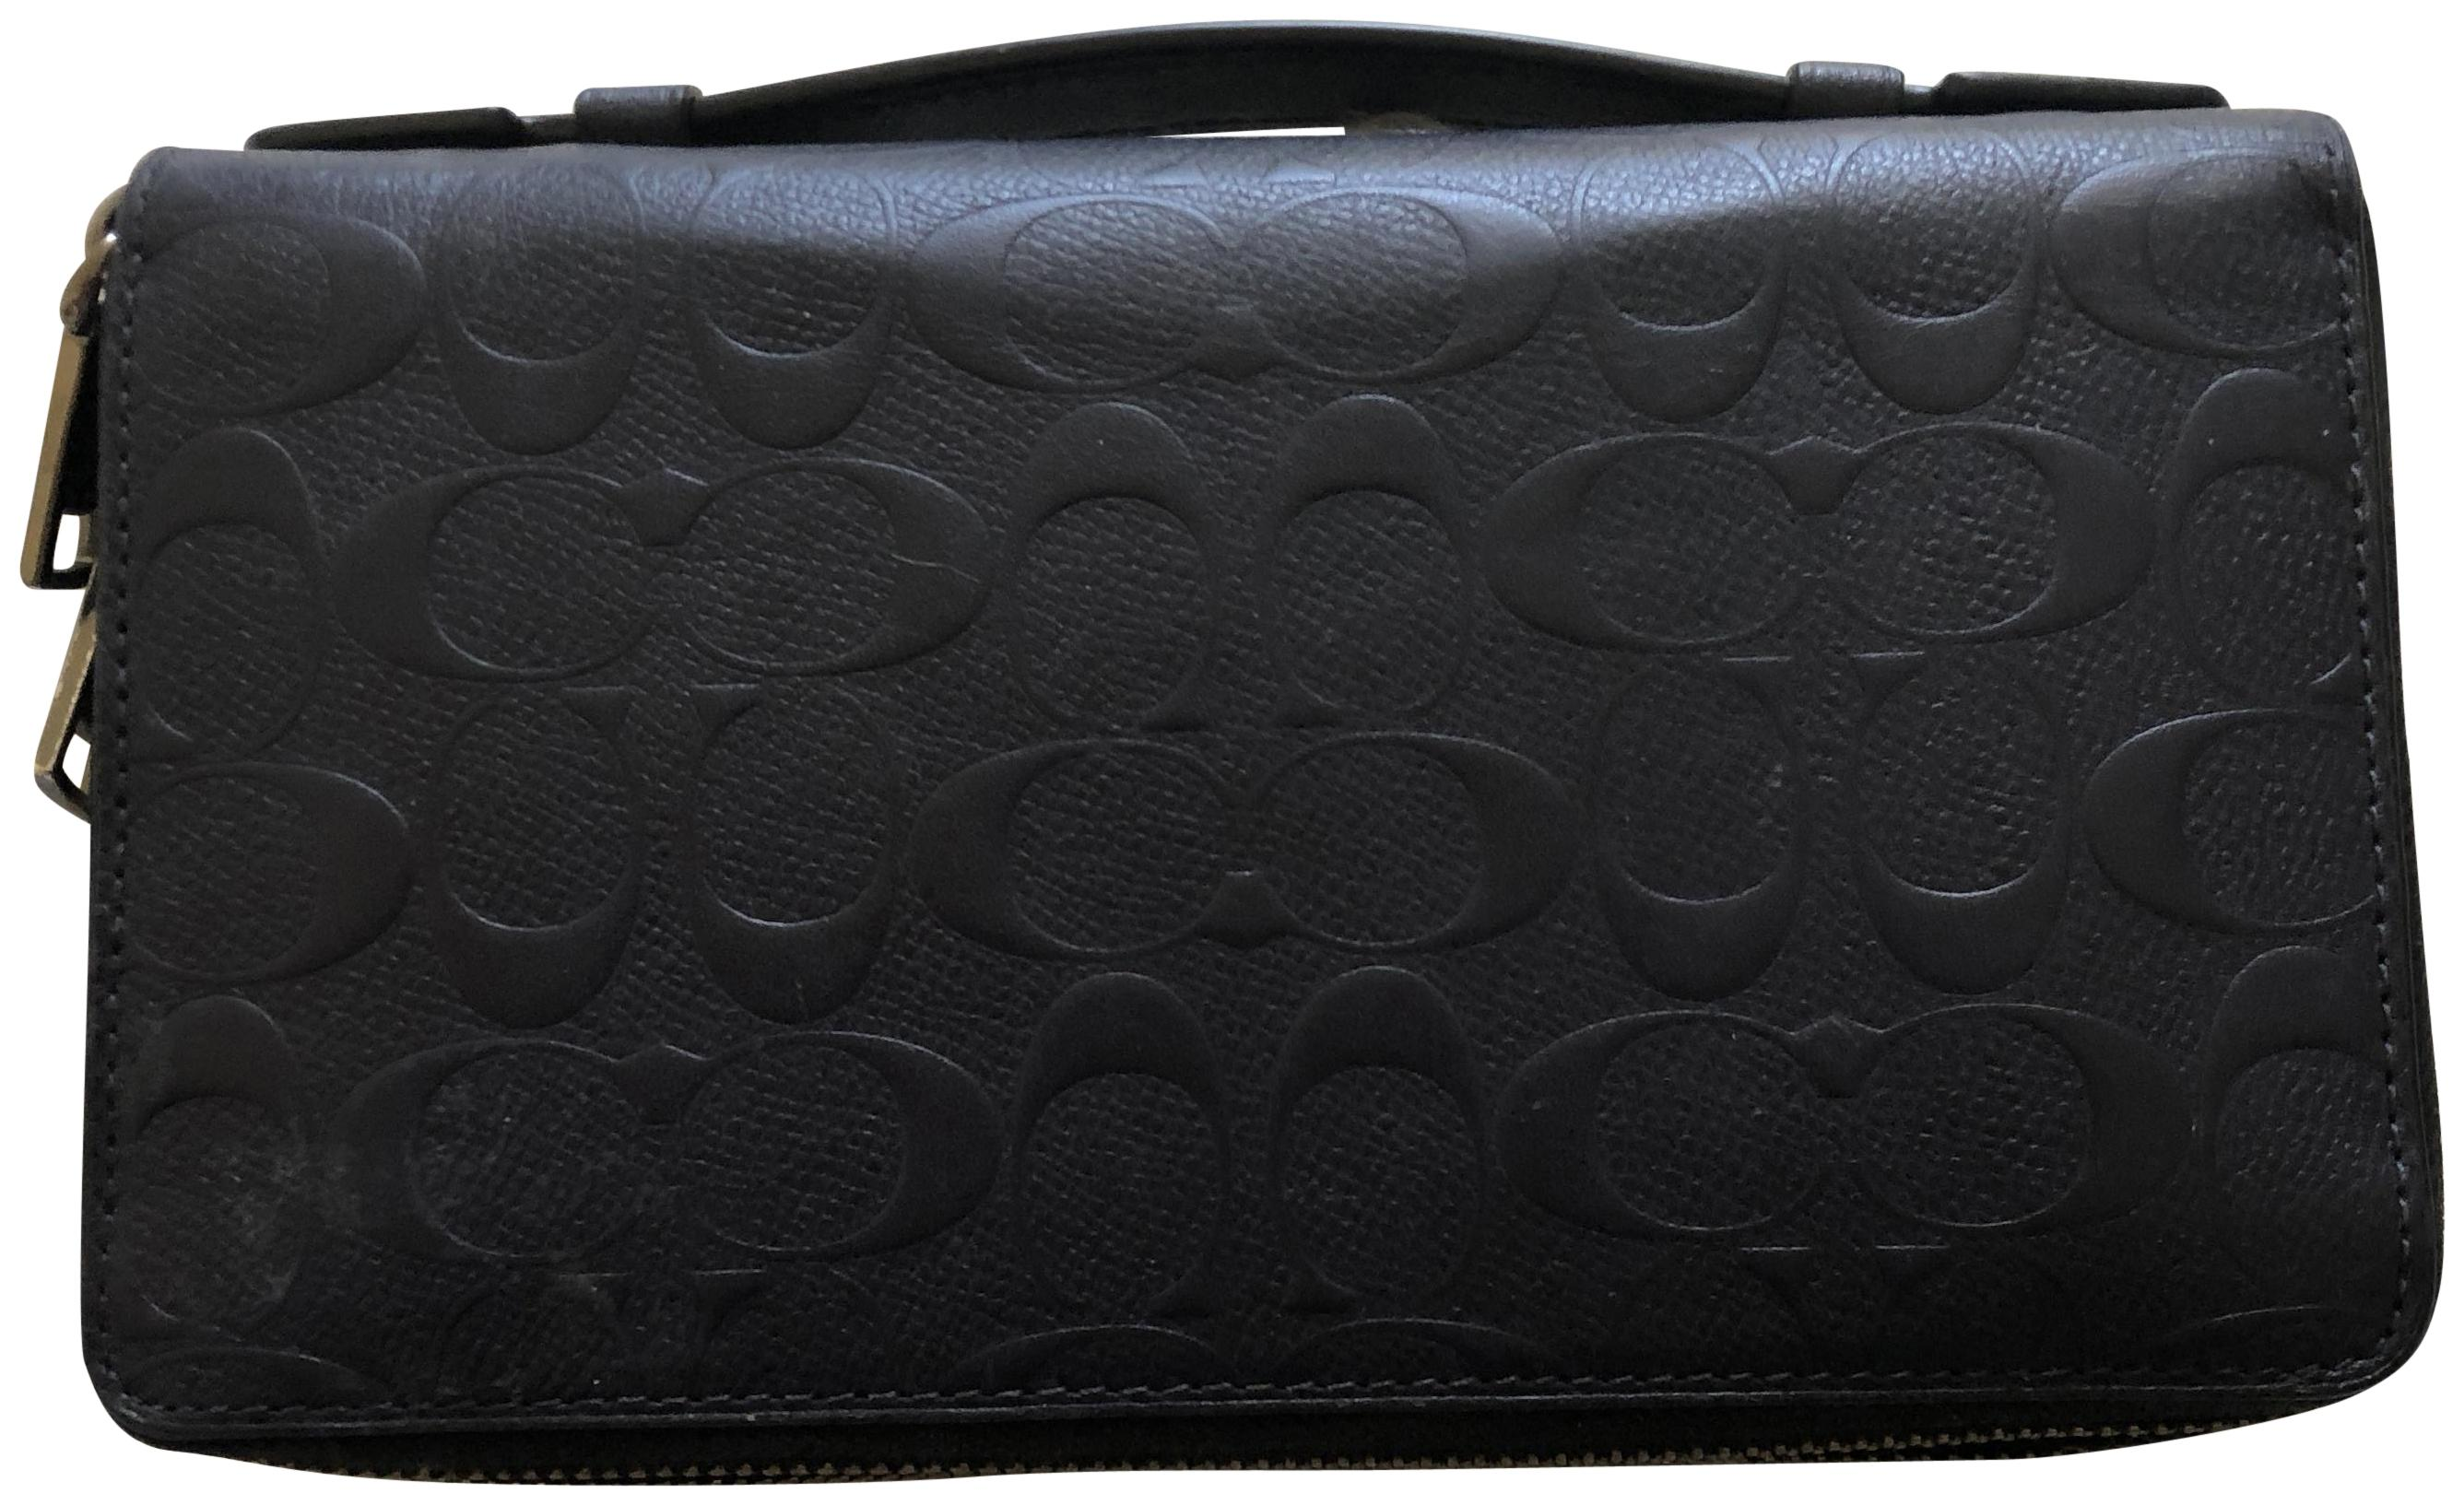 Coach Navy Blue Double Zip Travel Organizer In Crossgrain Leather